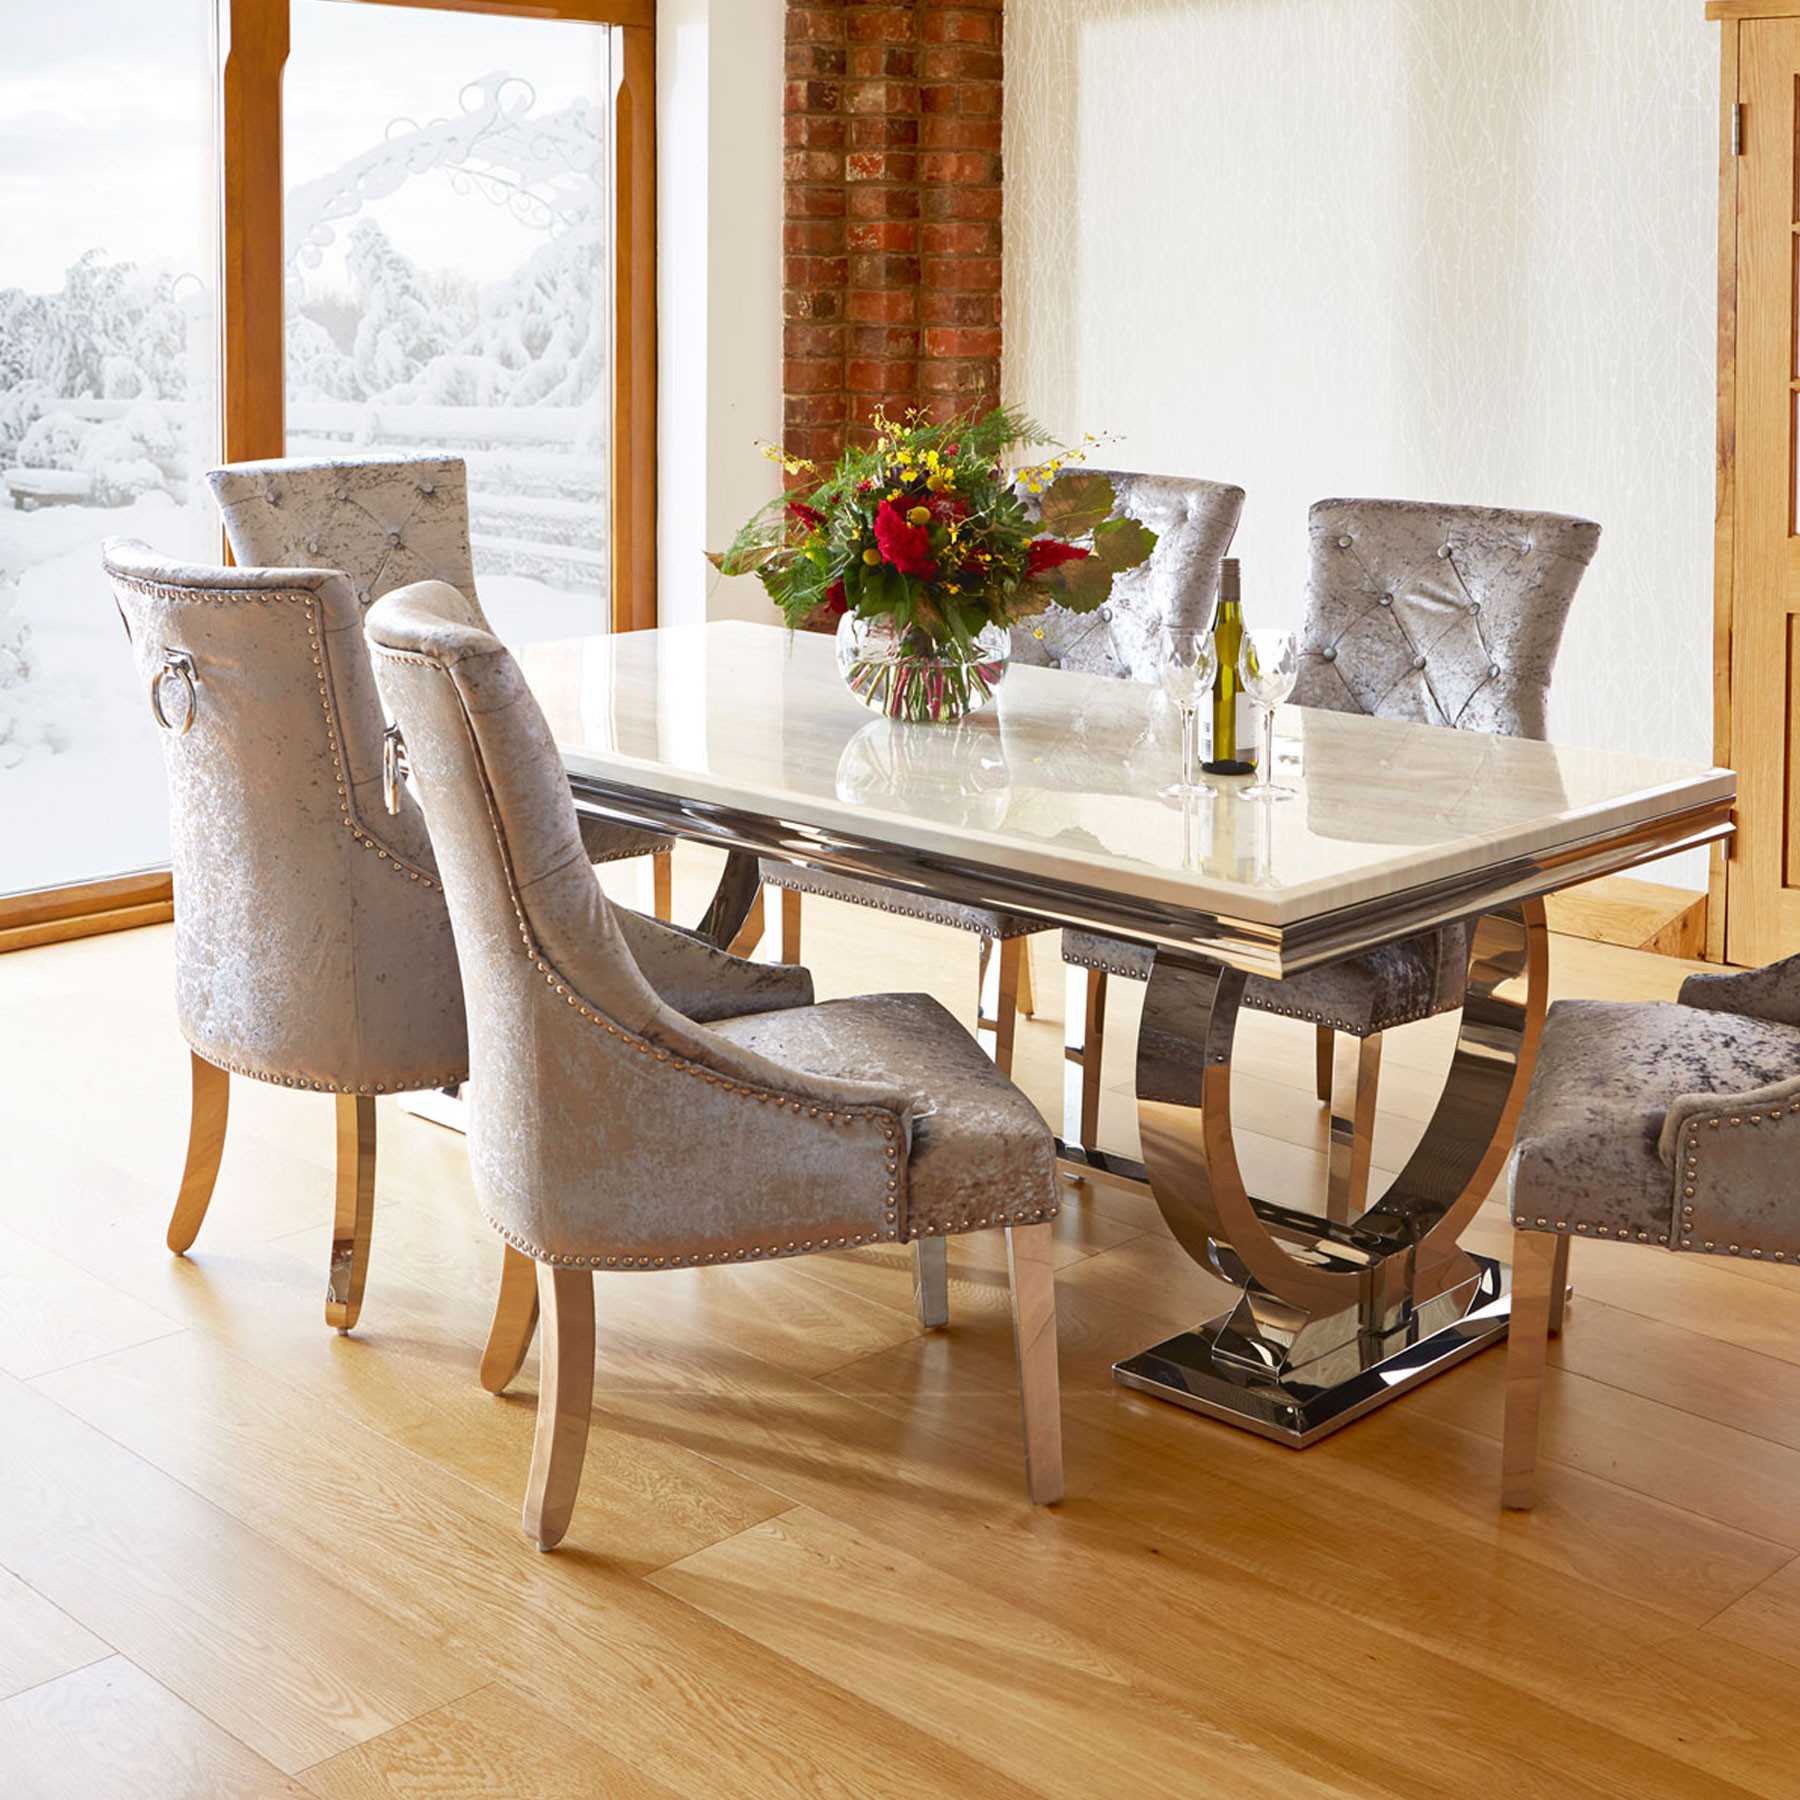 Dining Room Table And Chairs Dining Tables And Chairs All You Want To Know